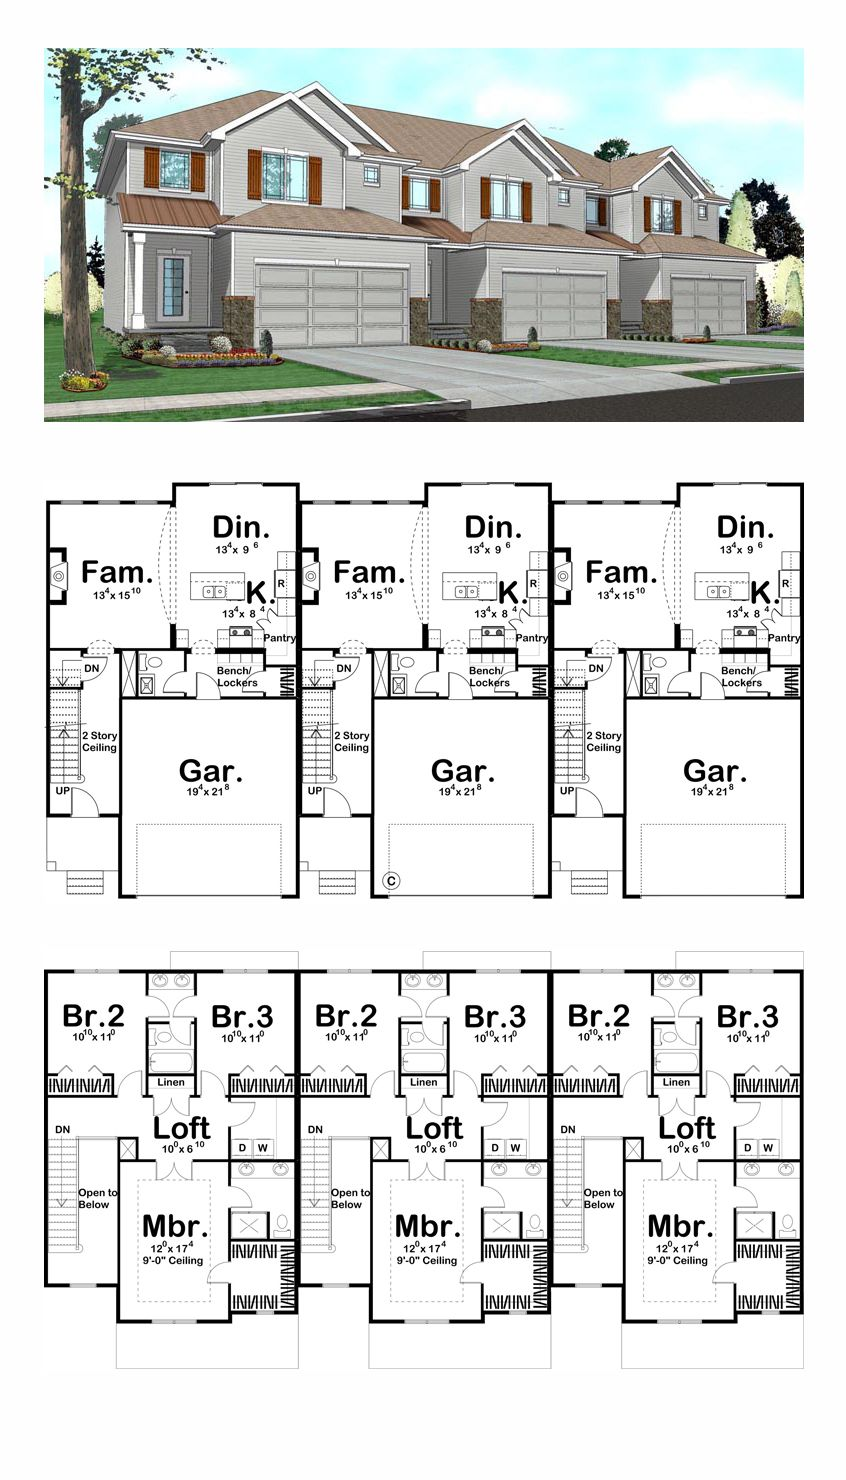 Three unit triplex plan 41141 total living area 4935 sq for Triplex floor plans